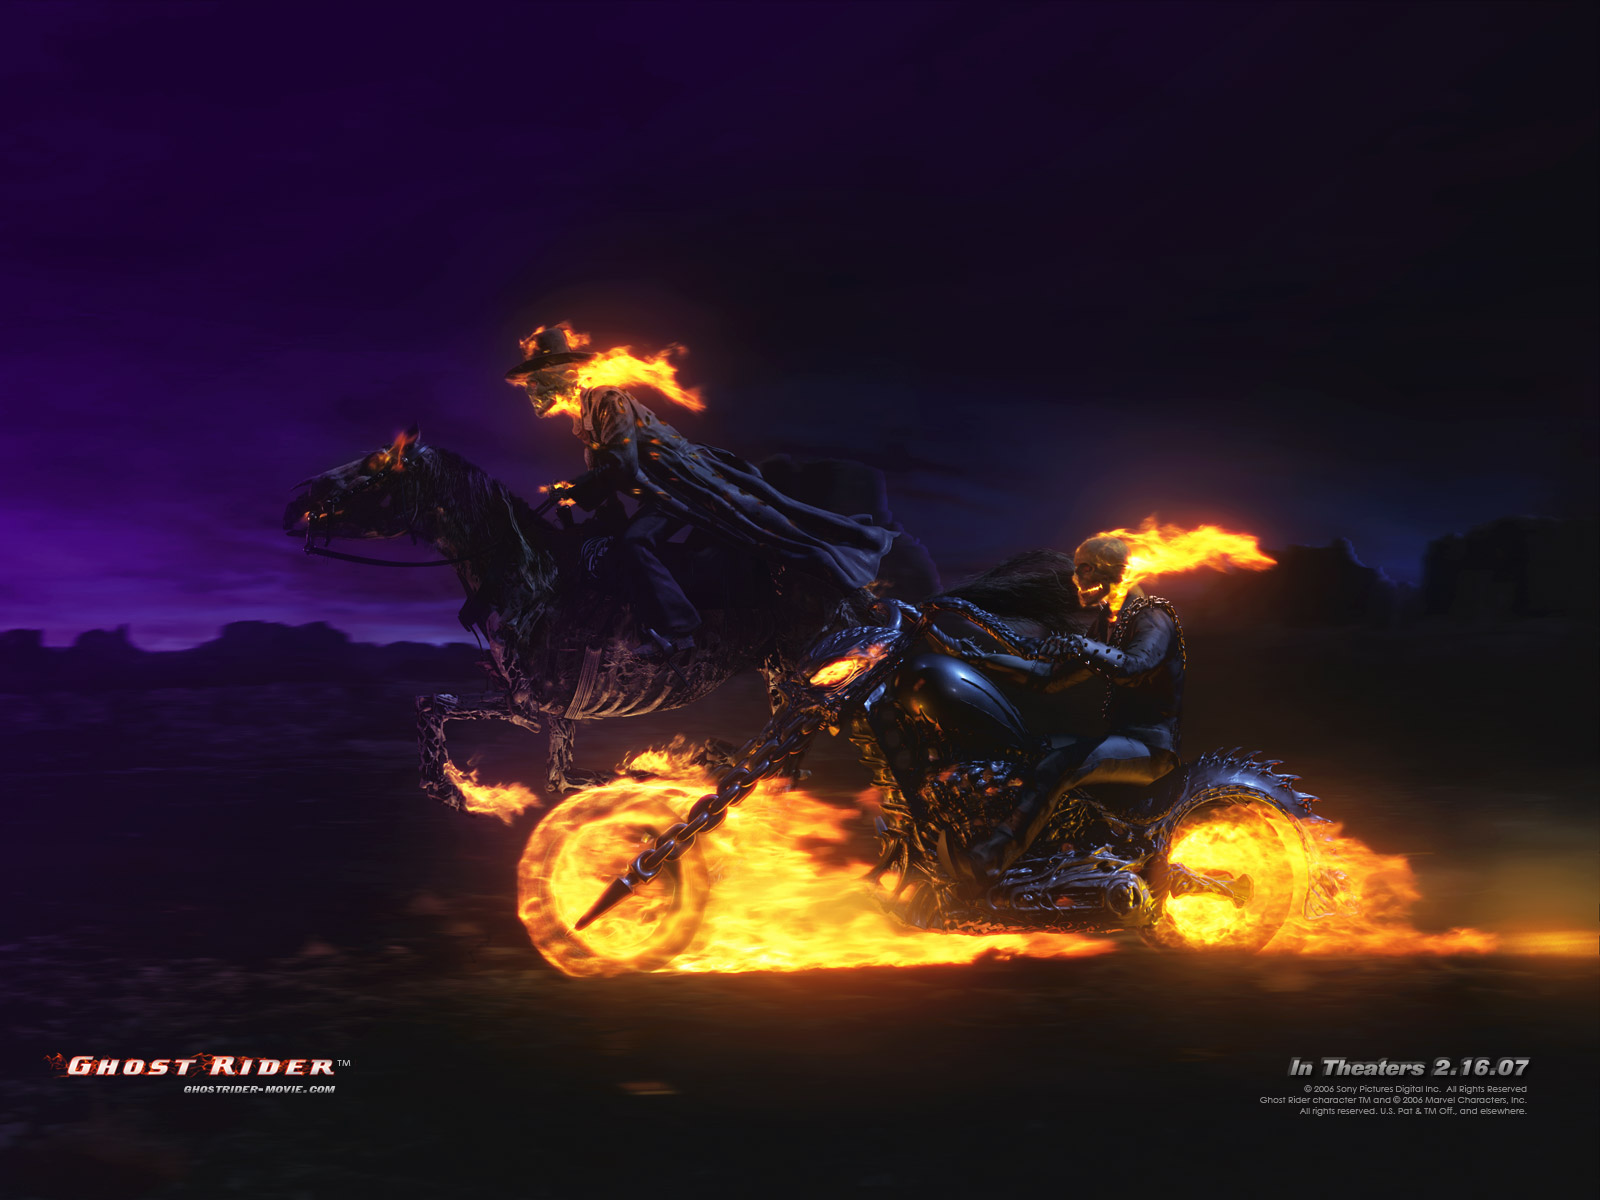 ghost rider desktop wallpaper - wallpapersafari